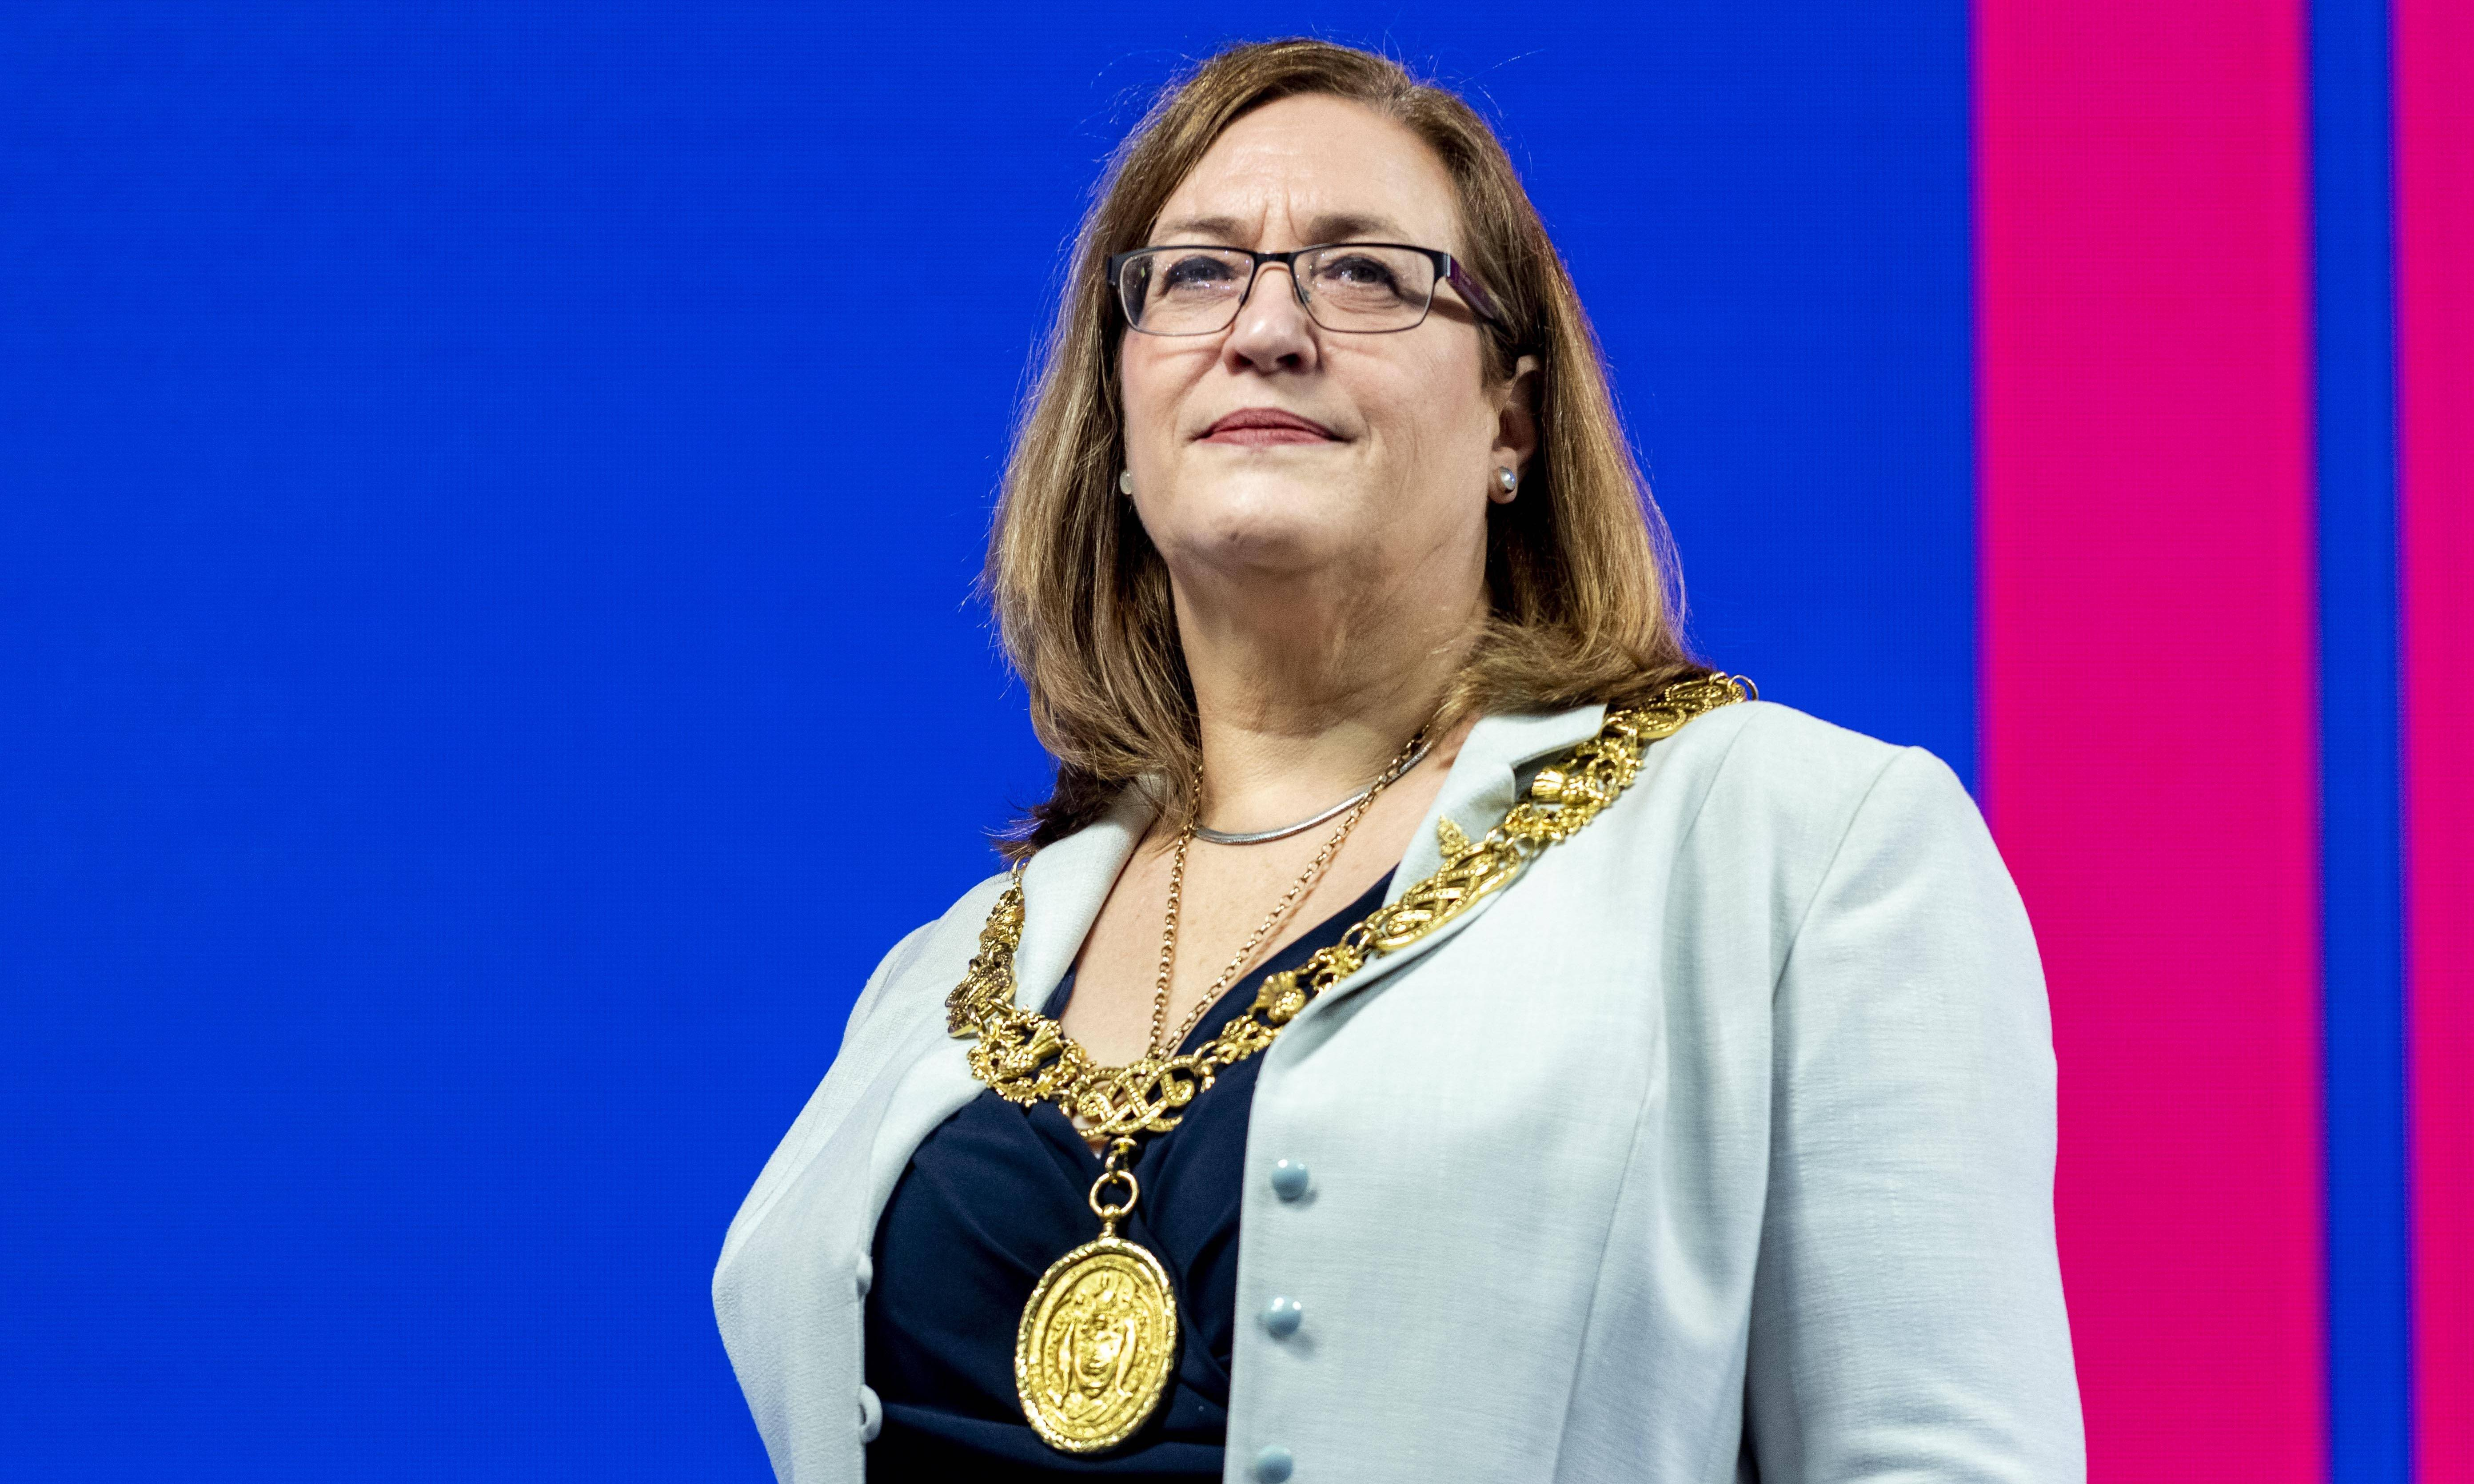 The lord provost was only guilty of trying to look good for Glasgow